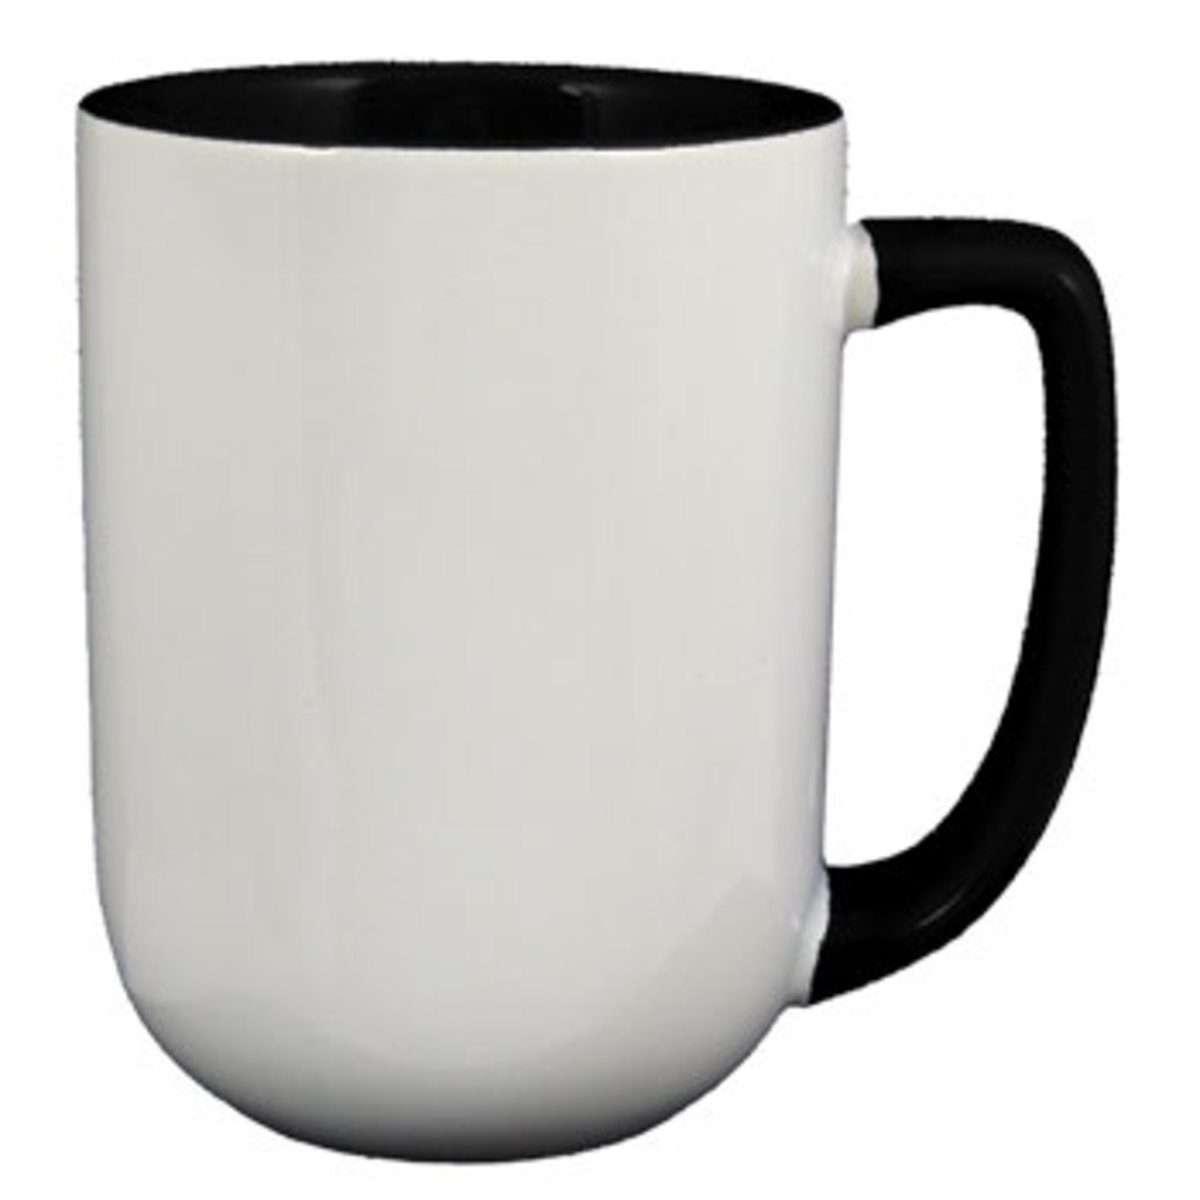 Although it's rather expensive, at $4.29 a piece for quantities of 4 or less, the 17 oz bakersfield coffee mug makes a great choice for a nice gift for someone special